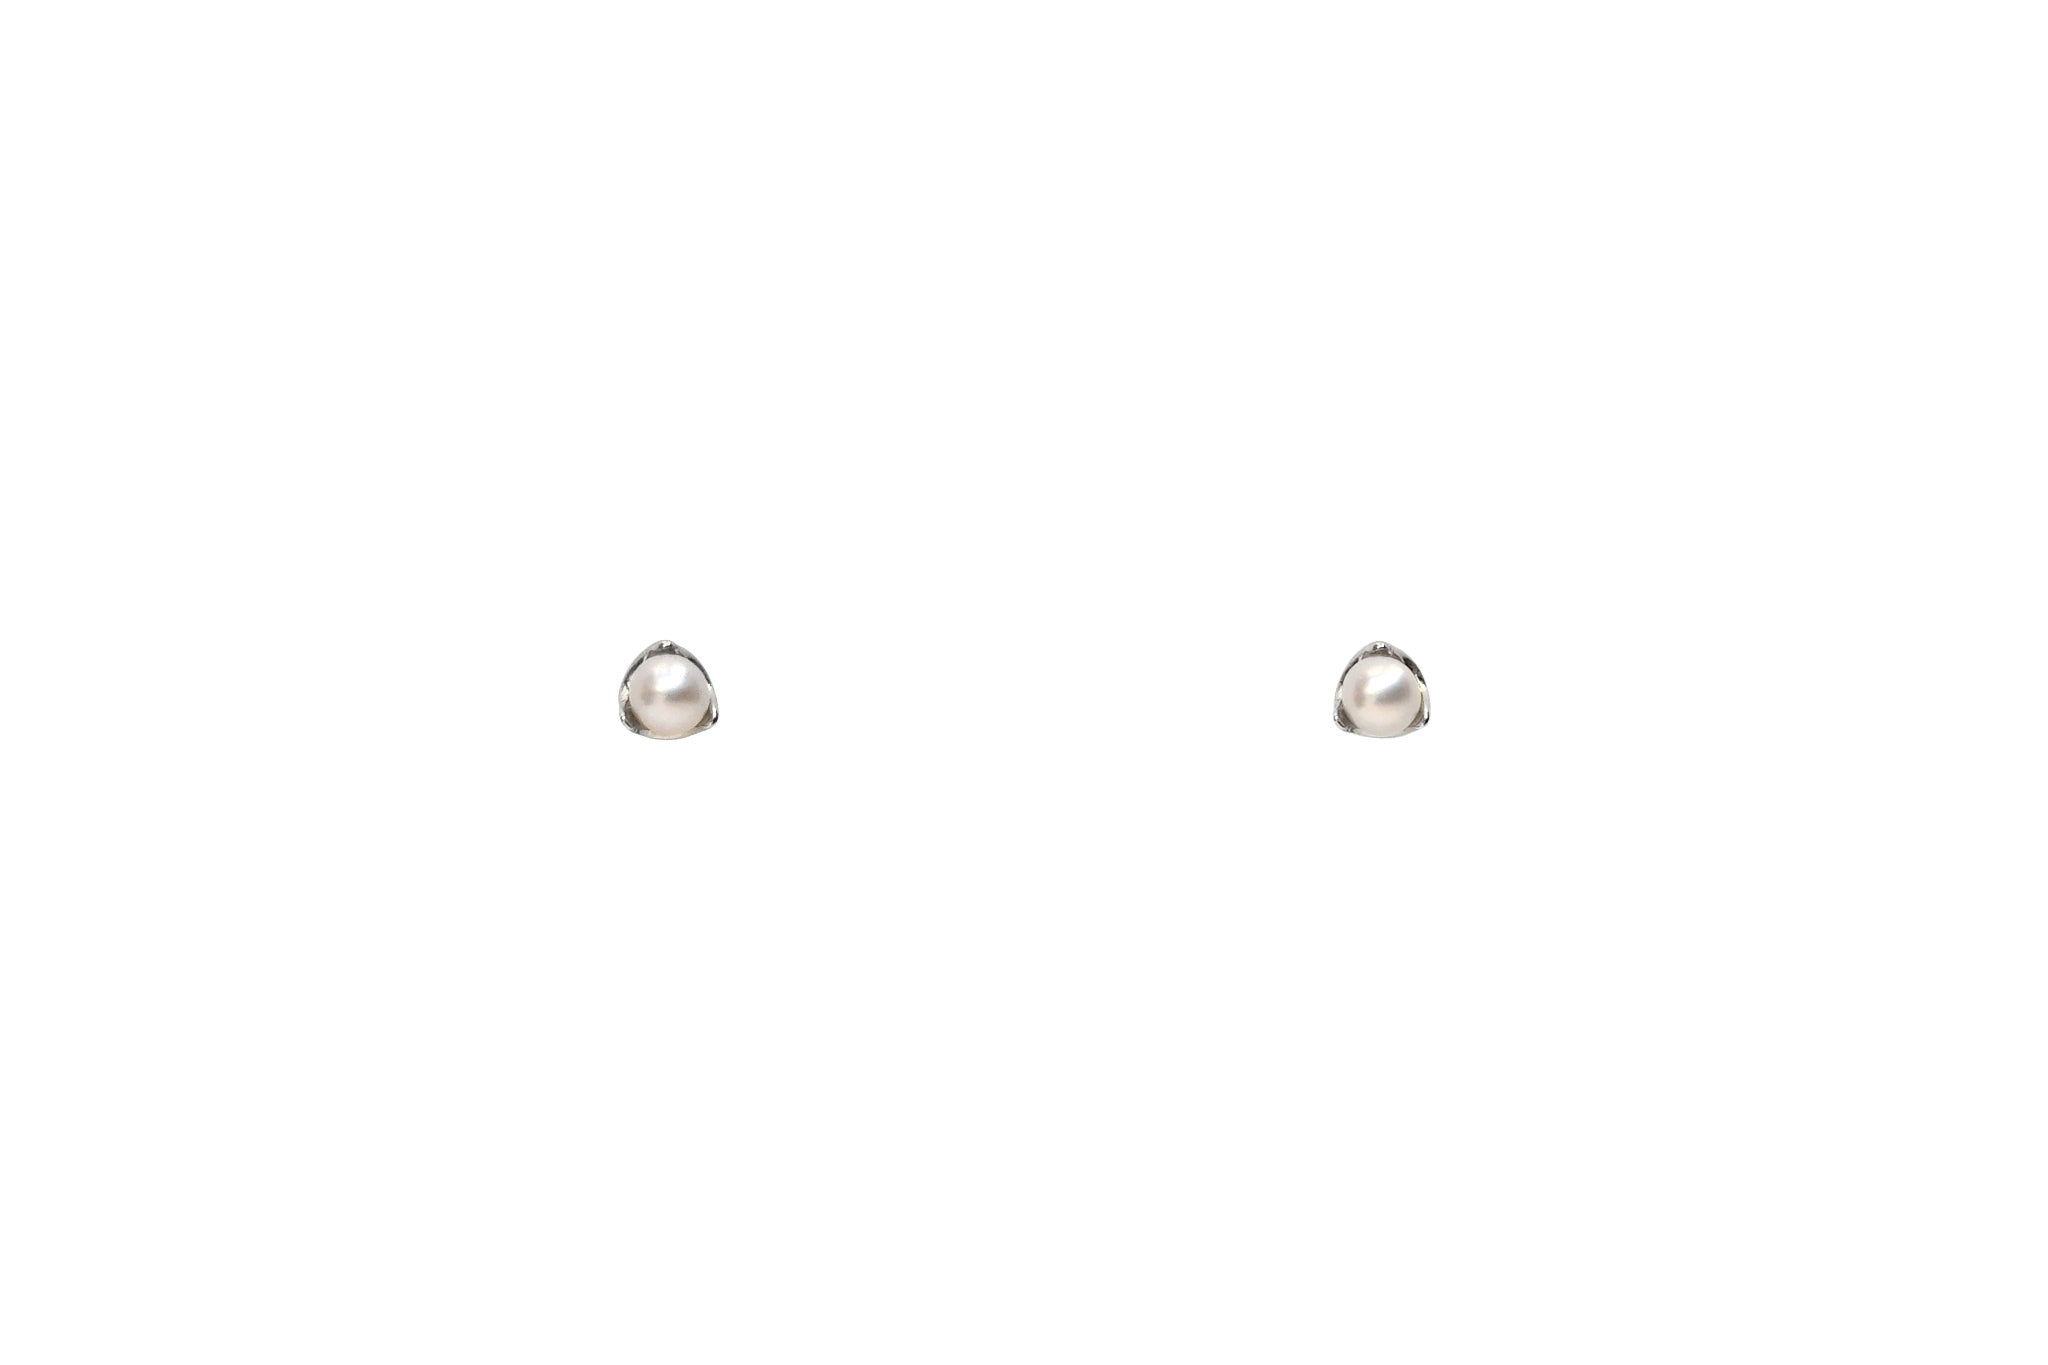 Sterling Silver Tiny Pearl Stud Earrings